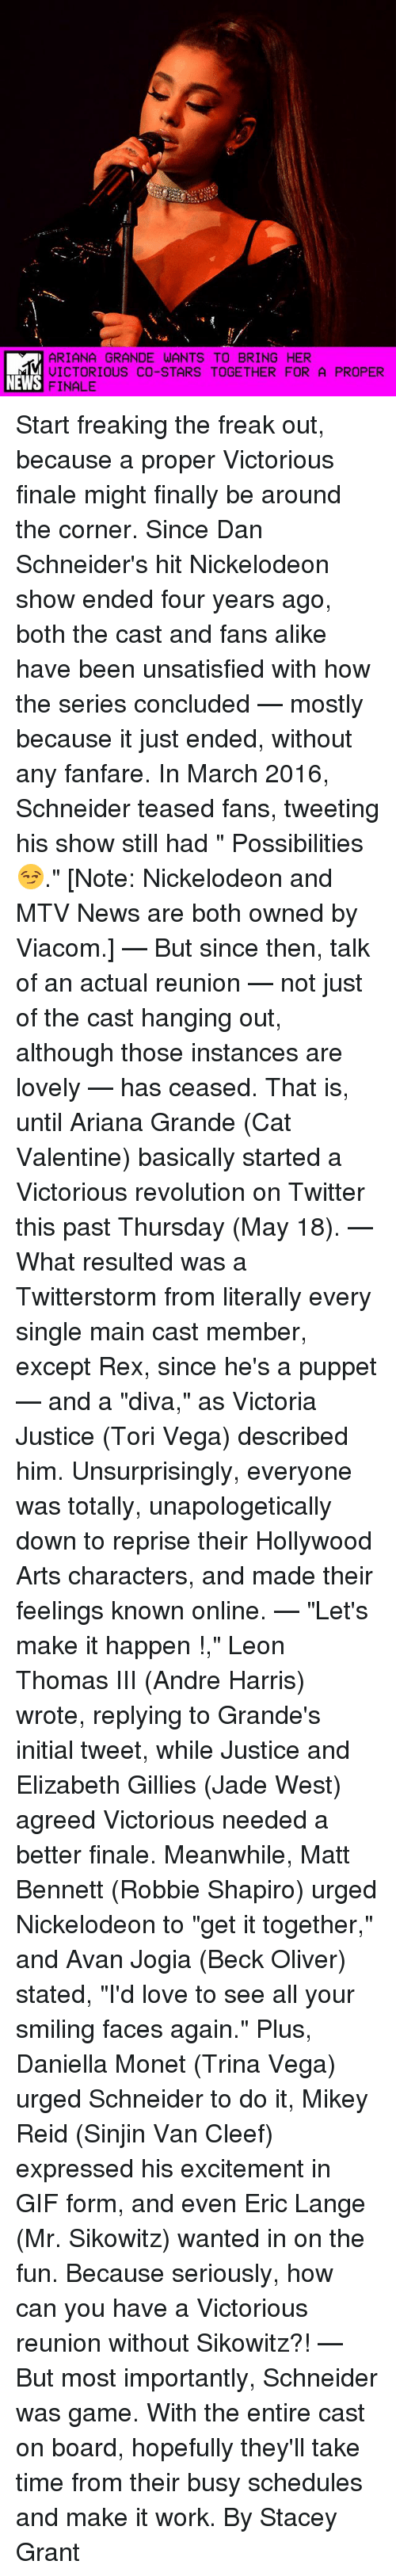 "Ariana Grande, Gif, and Love: ARIANA GRANDE WANTS TO BRING HER  VICTORIOUS CO-STARS TOGETHER FOR A PROPER  NEWS  FINALE Start freaking the freak out, because a proper Victorious finale might finally be around the corner. Since Dan Schneider's hit Nickelodeon show ended four years ago, both the cast and fans alike have been unsatisfied with how the series concluded — mostly because it just ended, without any fanfare. In March 2016, Schneider teased fans, tweeting his show still had "" Possibilities 😏."" [Note: Nickelodeon and MTV News are both owned by Viacom.] — But since then, talk of an actual reunion — not just of the cast hanging out, although those instances are lovely — has ceased. That is, until Ariana Grande (Cat Valentine) basically started a Victorious revolution on Twitter this past Thursday (May 18). — What resulted was a Twitterstorm from literally every single main cast member, except Rex, since he's a puppet — and a ""diva,"" as Victoria Justice (Tori Vega) described him. Unsurprisingly, everyone was totally, unapologetically down to reprise their Hollywood Arts characters, and made their feelings known online. — ""Let's make it happen !,"" Leon Thomas III (Andre Harris) wrote, replying to Grande's initial tweet, while Justice and Elizabeth Gillies (Jade West) agreed Victorious needed a better finale. Meanwhile, Matt Bennett (Robbie Shapiro) urged Nickelodeon to ""get it together,"" and Avan Jogia (Beck Oliver) stated, ""I'd love to see all your smiling faces again."" Plus, Daniella Monet (Trina Vega) urged Schneider to do it, Mikey Reid (Sinjin Van Cleef) expressed his excitement in GIF form, and even Eric Lange (Mr. Sikowitz) wanted in on the fun. Because seriously, how can you have a Victorious reunion without Sikowitz?! — But most importantly, Schneider was game. With the entire cast on board, hopefully they'll take time from their busy schedules and make it work. By Stacey Grant"